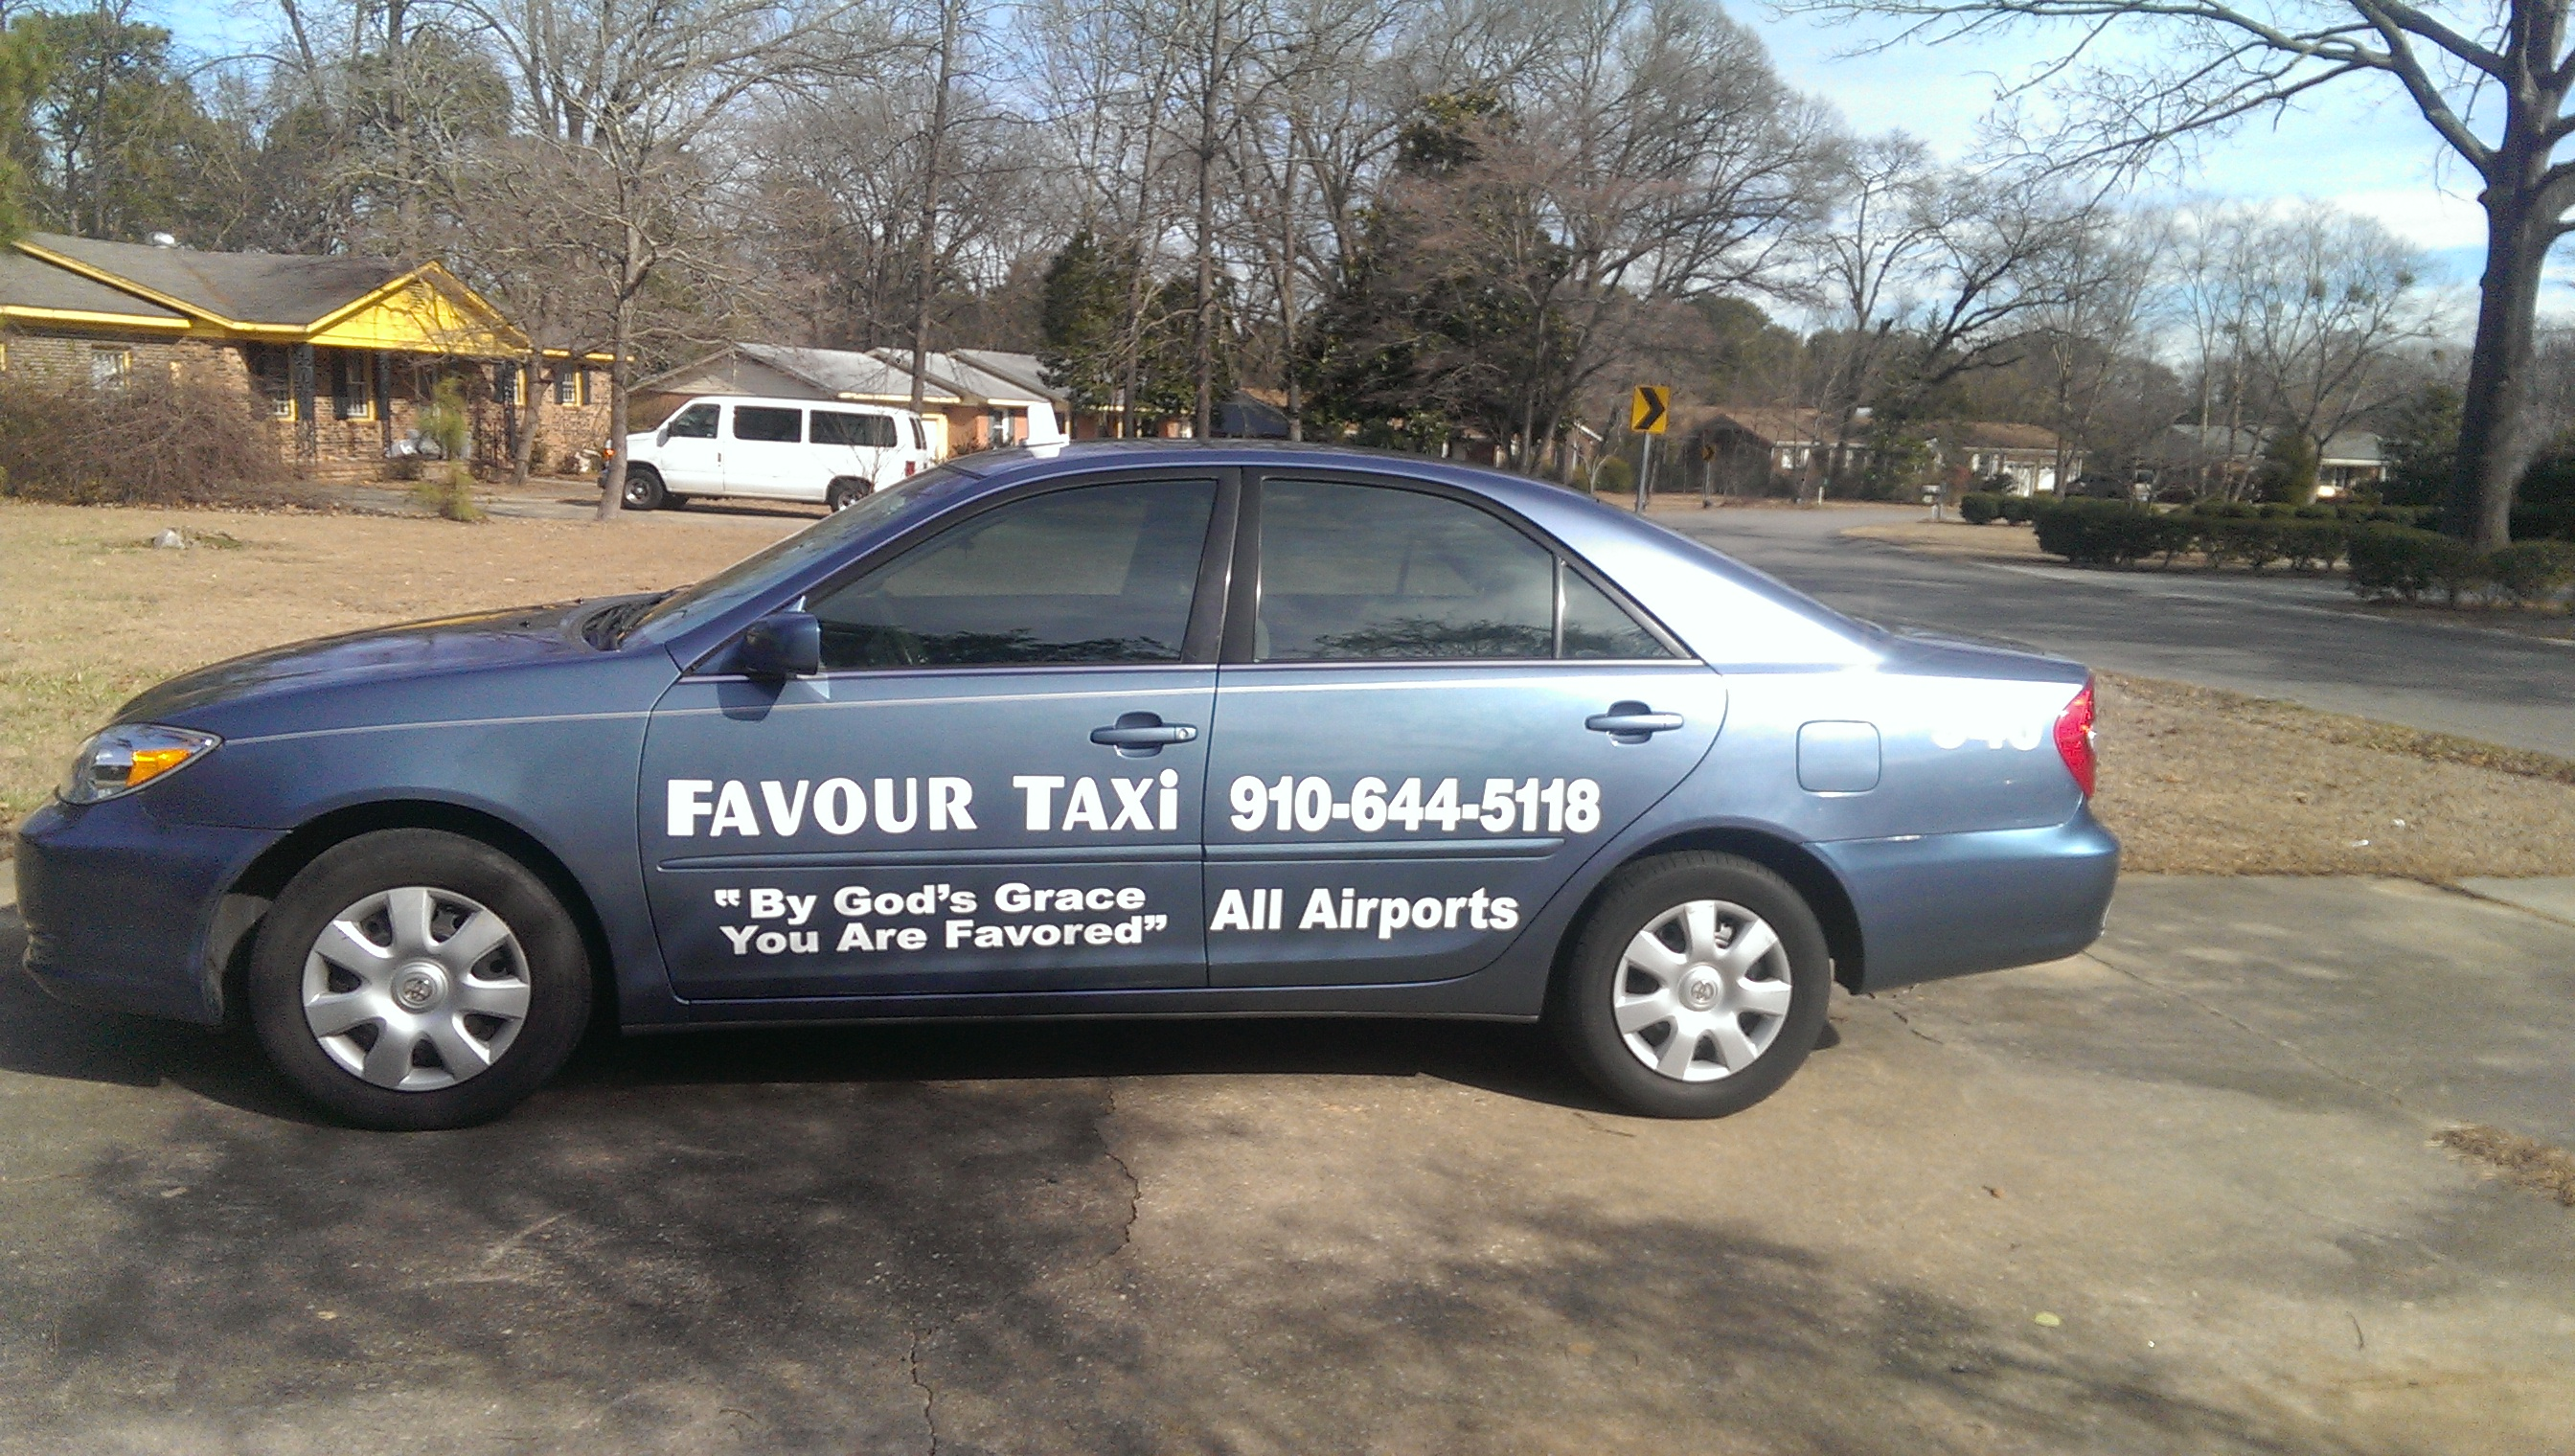 Taxi Fayetteville Nc >> favour taxi southview circle, fayetteville, NC 28311 - YP.com